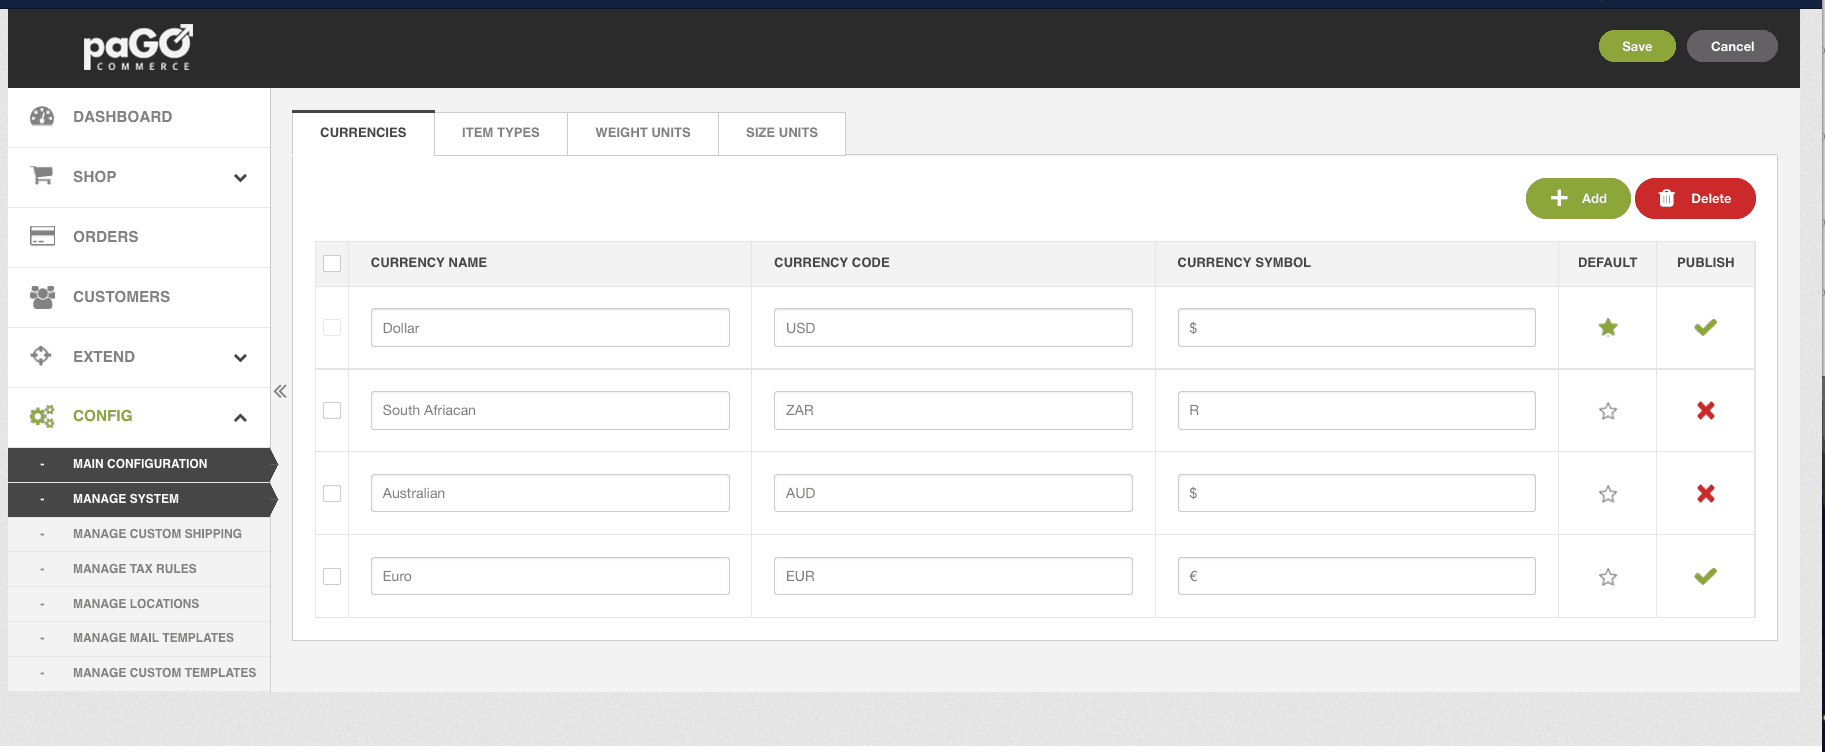 easy currencies manager within paGO Commerce